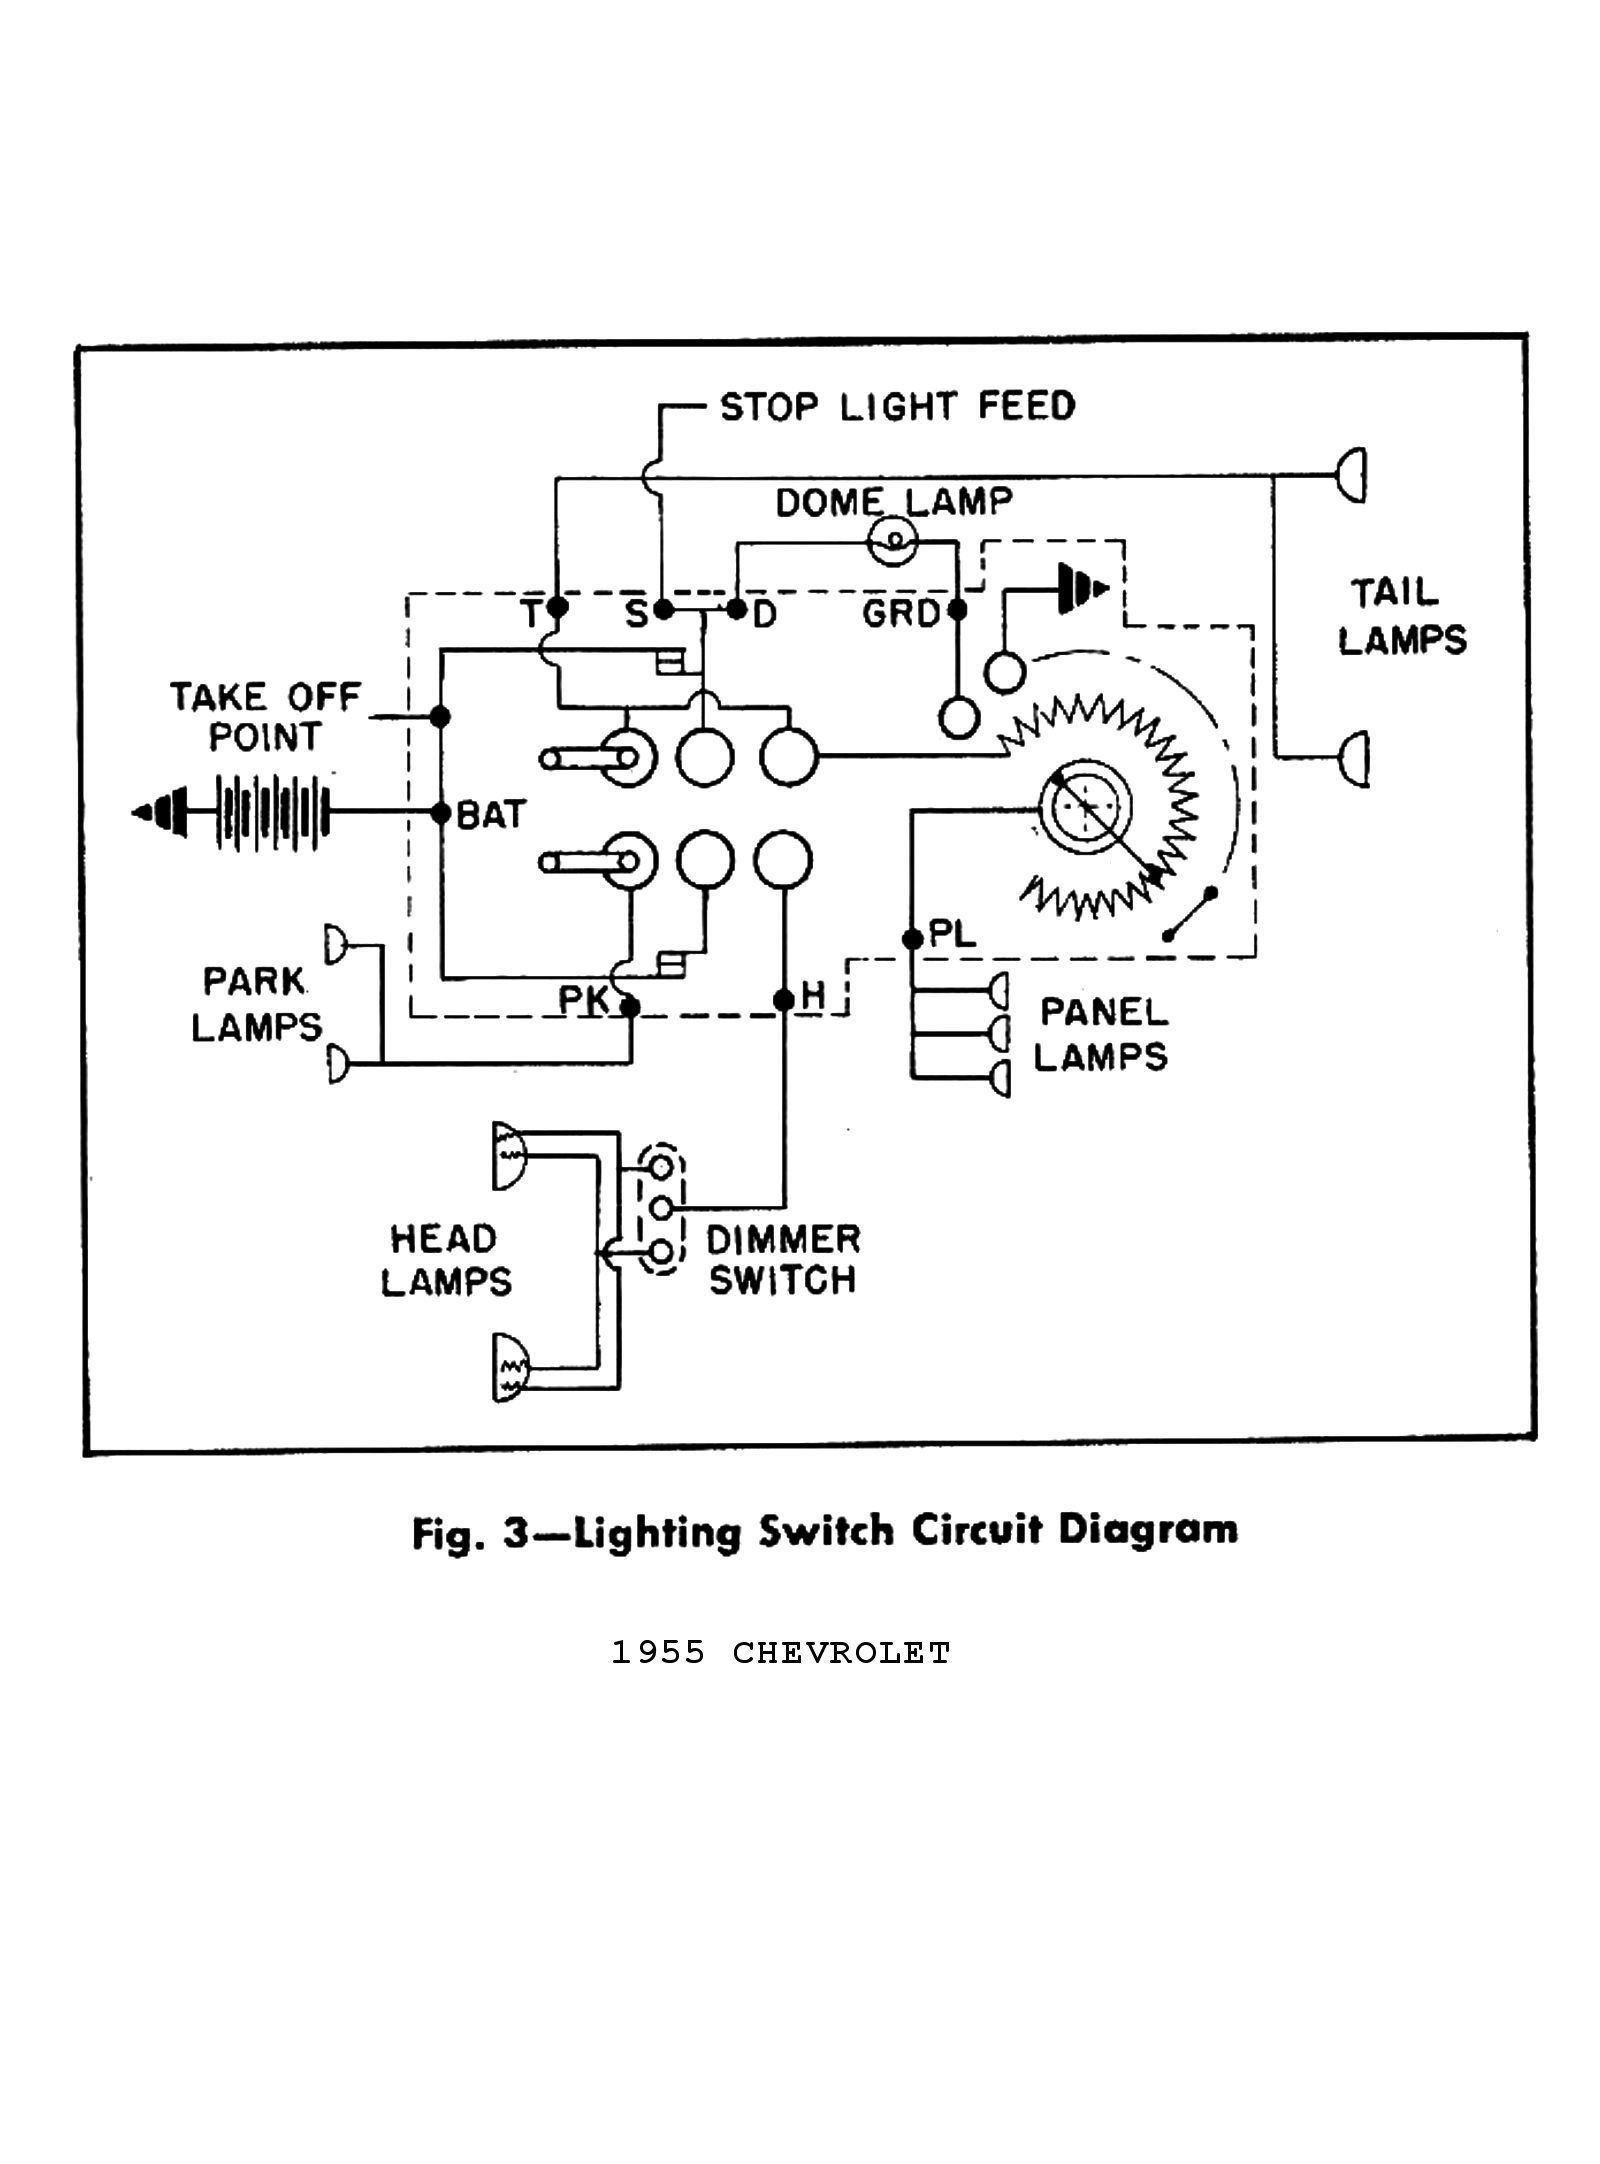 66 chevy headlight switch wiring diagram wiring diagram view 63 chevy truck headlight switch wiring [ 1600 x 2164 Pixel ]